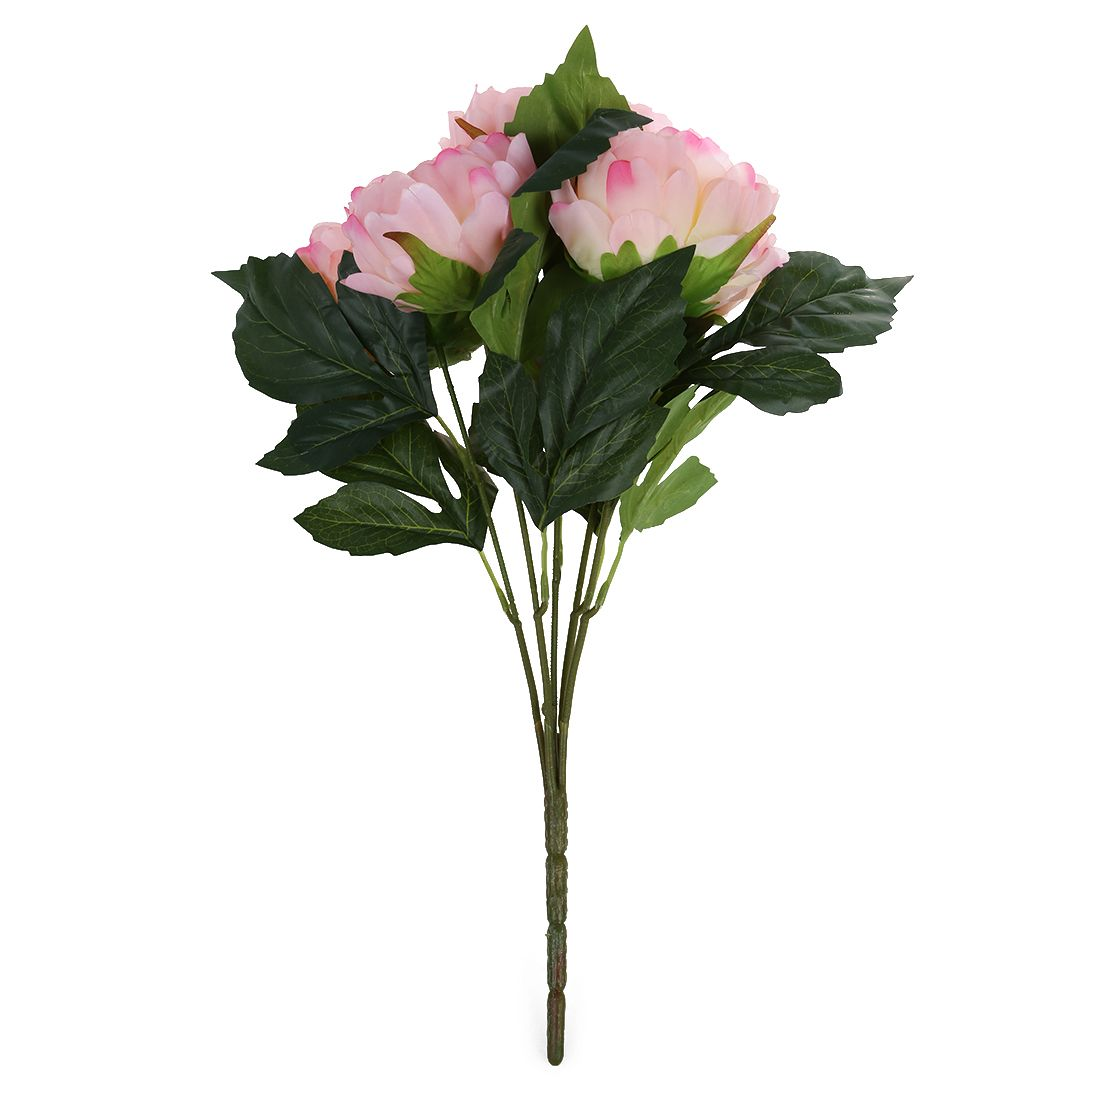 Artificial peony silk flower bouquet pink 40cm affiliate cheap silk flower bouquet buy quality flower bouquet directly from china peony silk flower bouquet suppliers aima artificial peony silk flower bouquet mightylinksfo